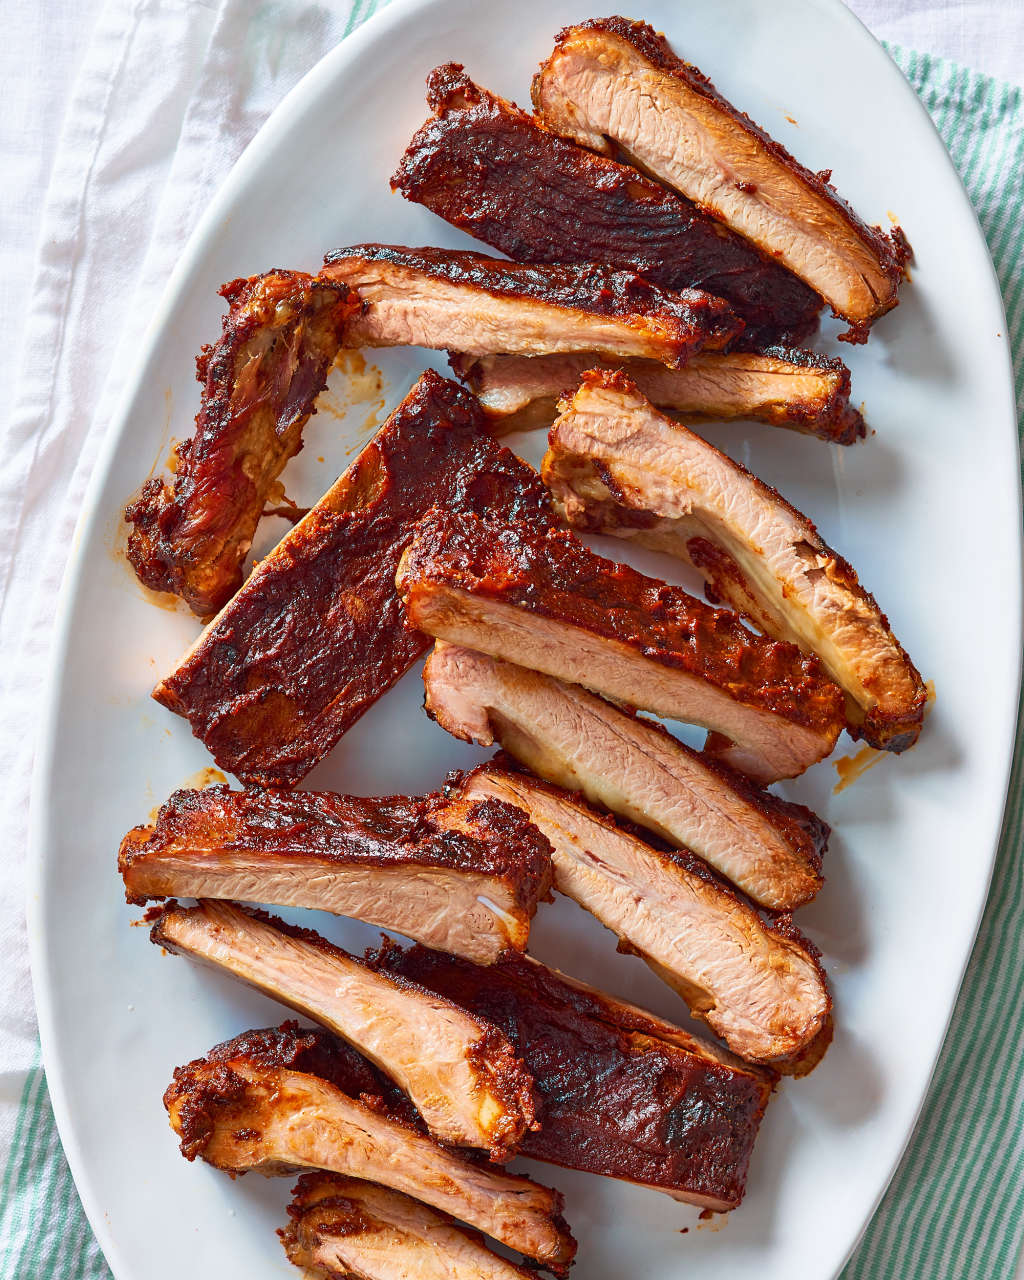 The Best Ribs Are the Ones You Make in the Oven